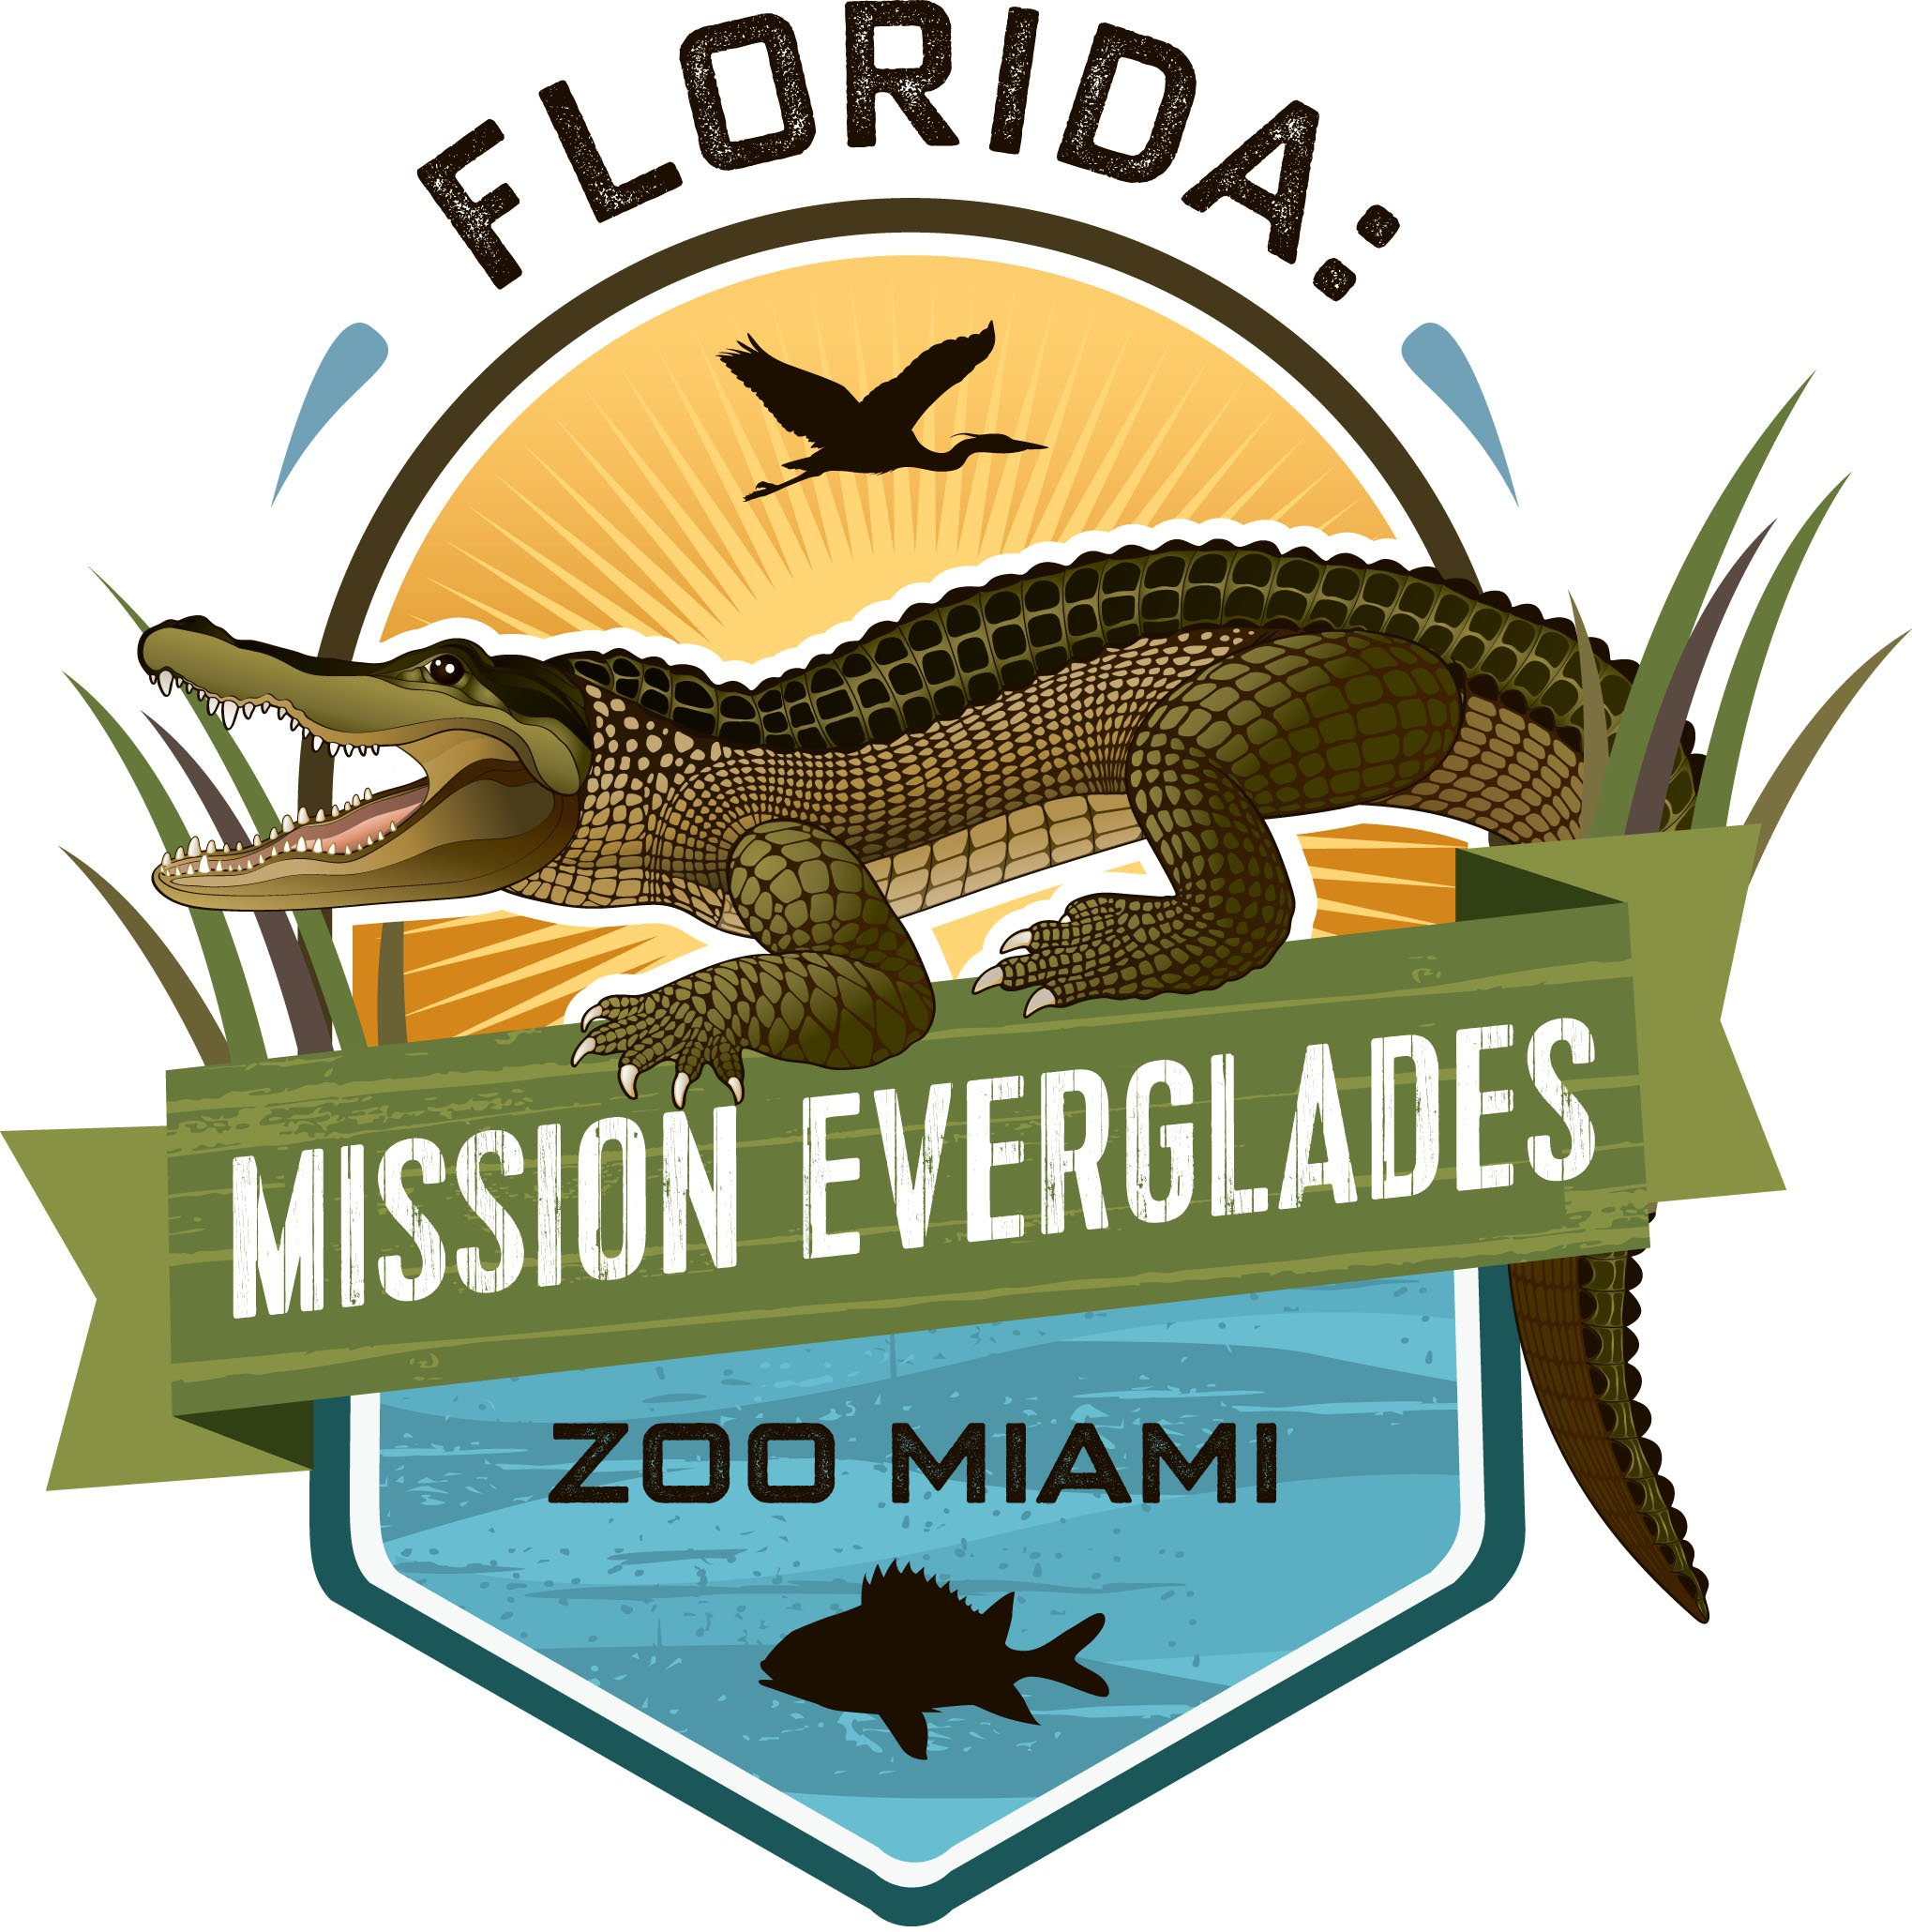 Florida: Mission Everglades at Zoo Miami